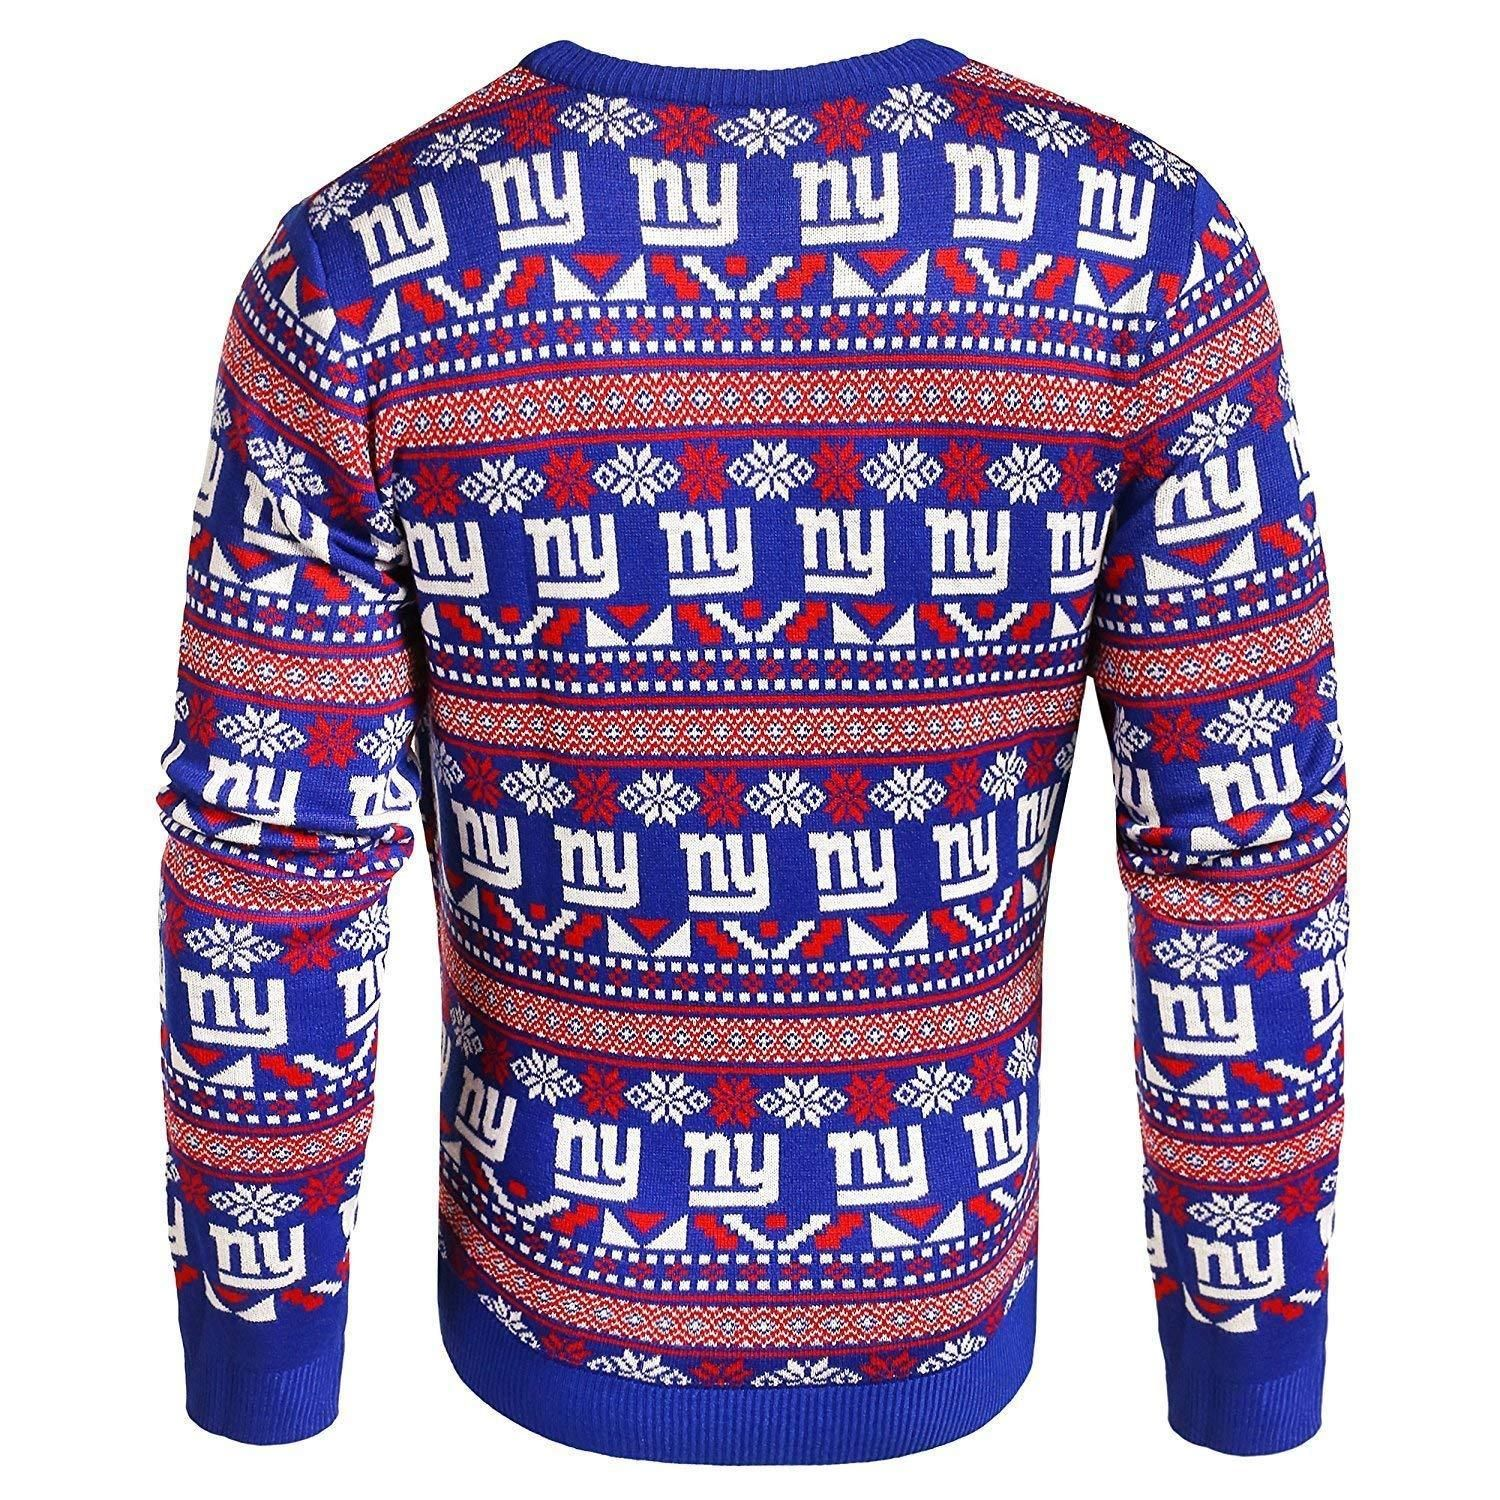 aa1c5b693 Forever Collectibles NFL Men s New York Giants Aztec Print Ugly Sweater